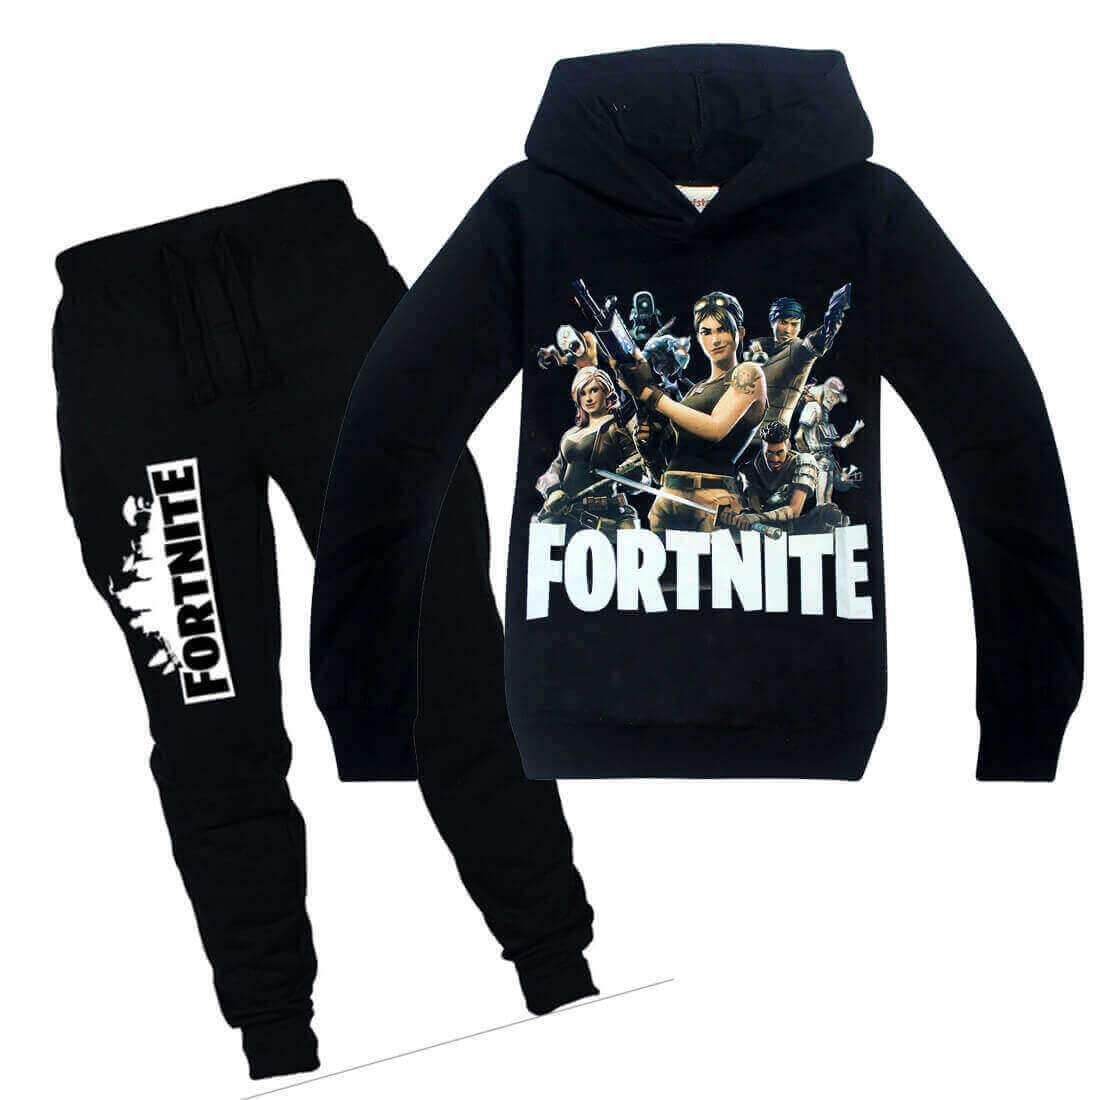 94913b321 Fortnite Children s T Shirt Hoodies Sets in 2019